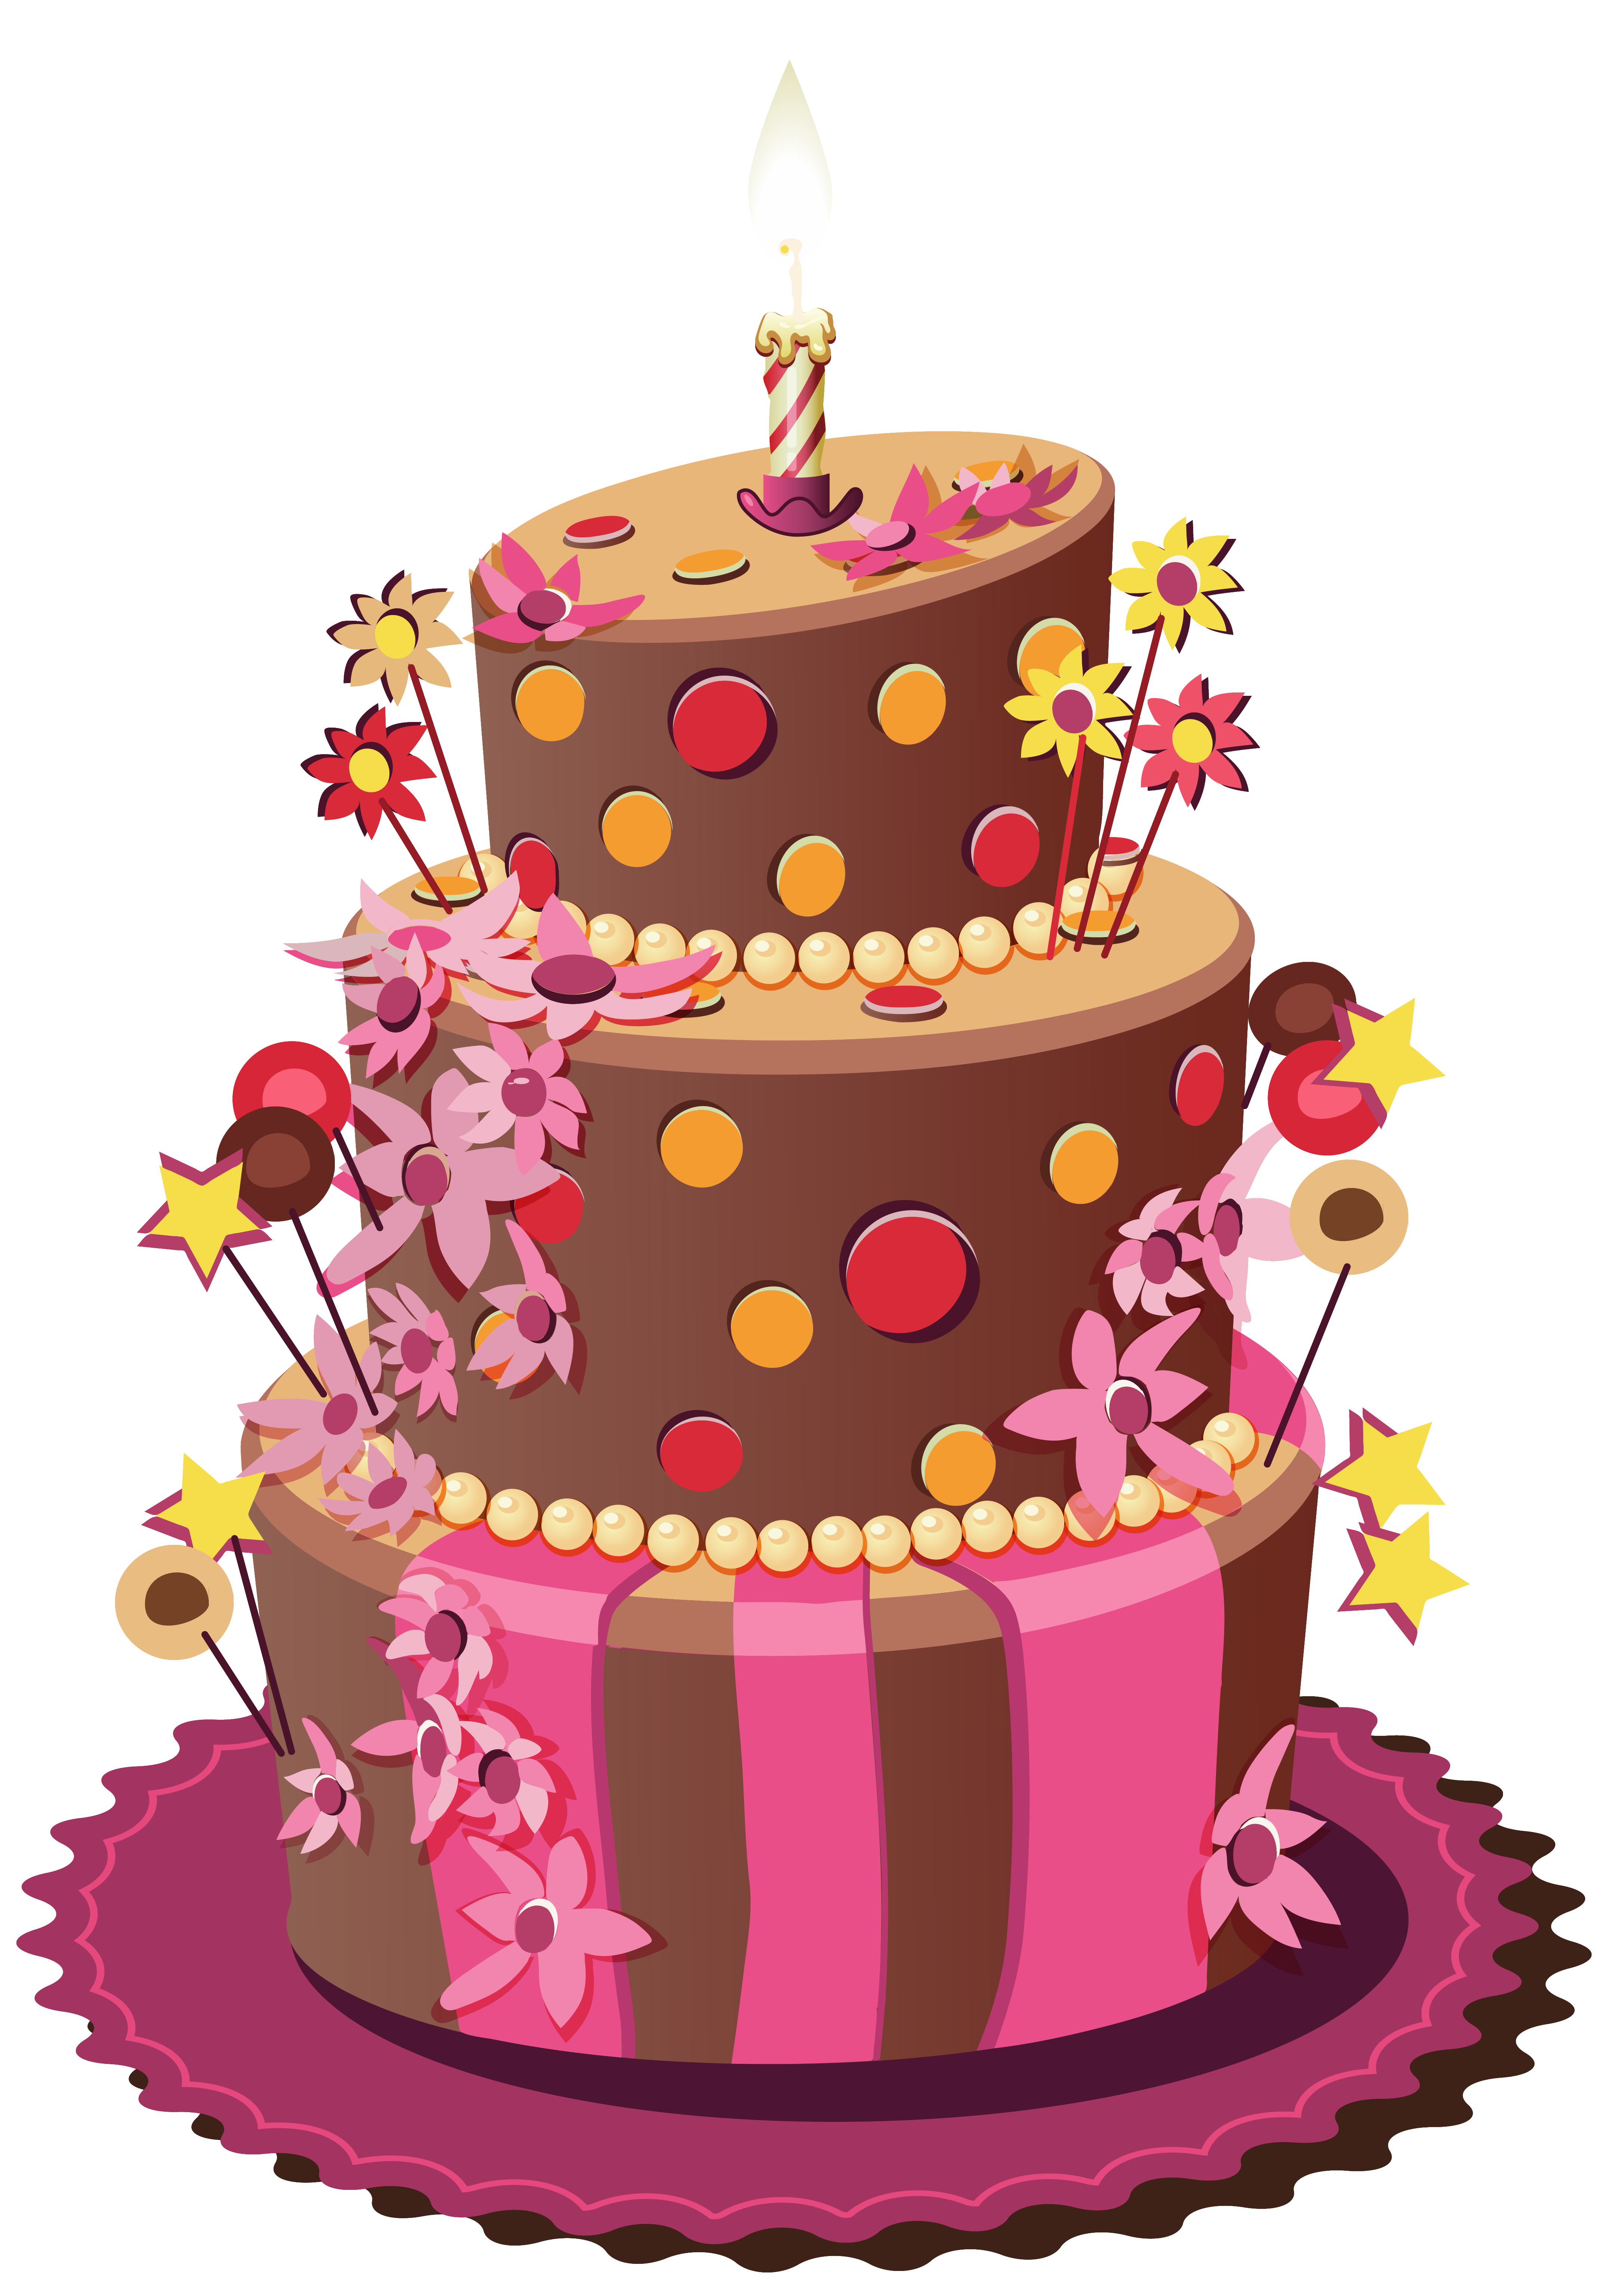 Pin by Michelle Wicker on Cakes and Cupcakes... Cake